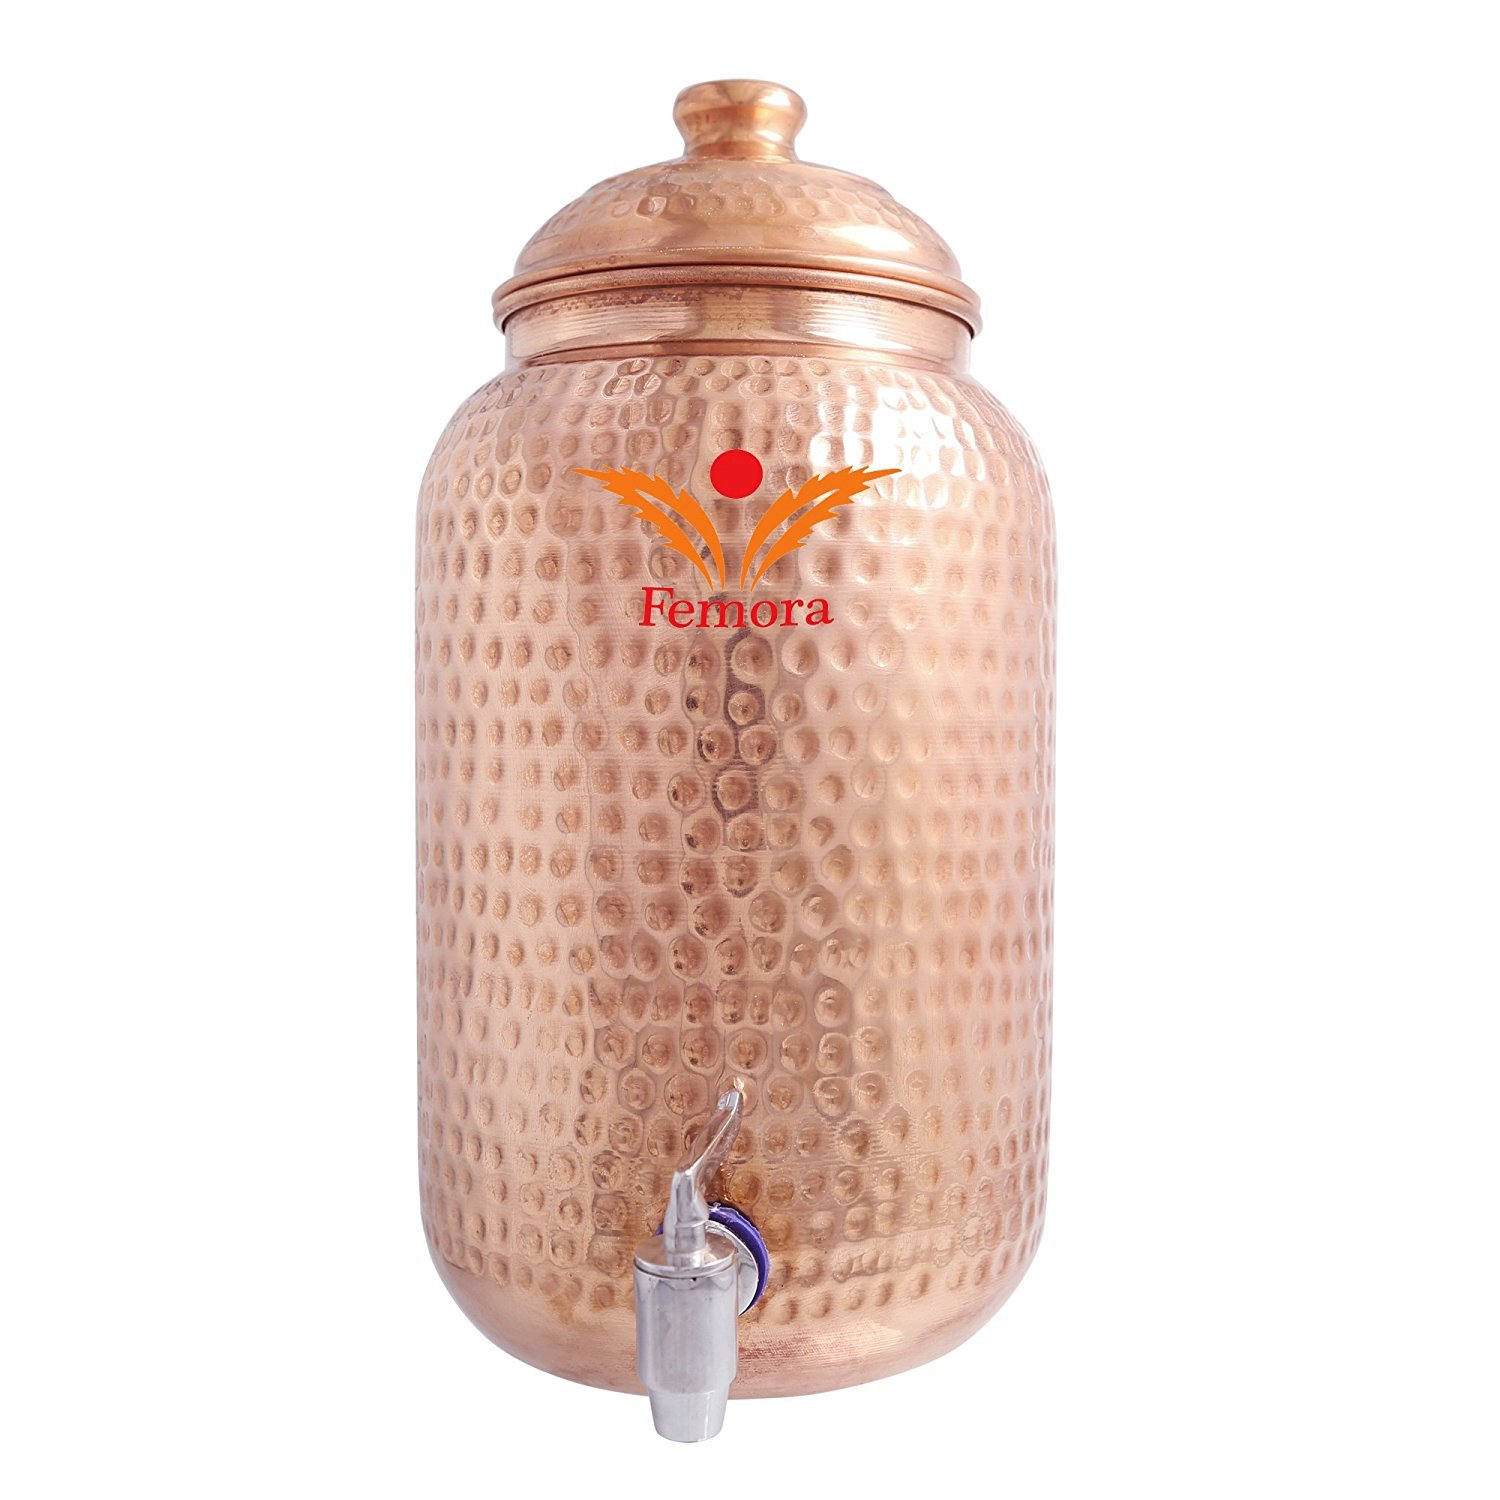 Femora Handmade Pure Solid Copper Water Pot Tank Matka for use Storage Drinking Water Restaurant Hotel Health Benefits for Indian Yoga Ayurveda (270.5Oz) Christmas Gift